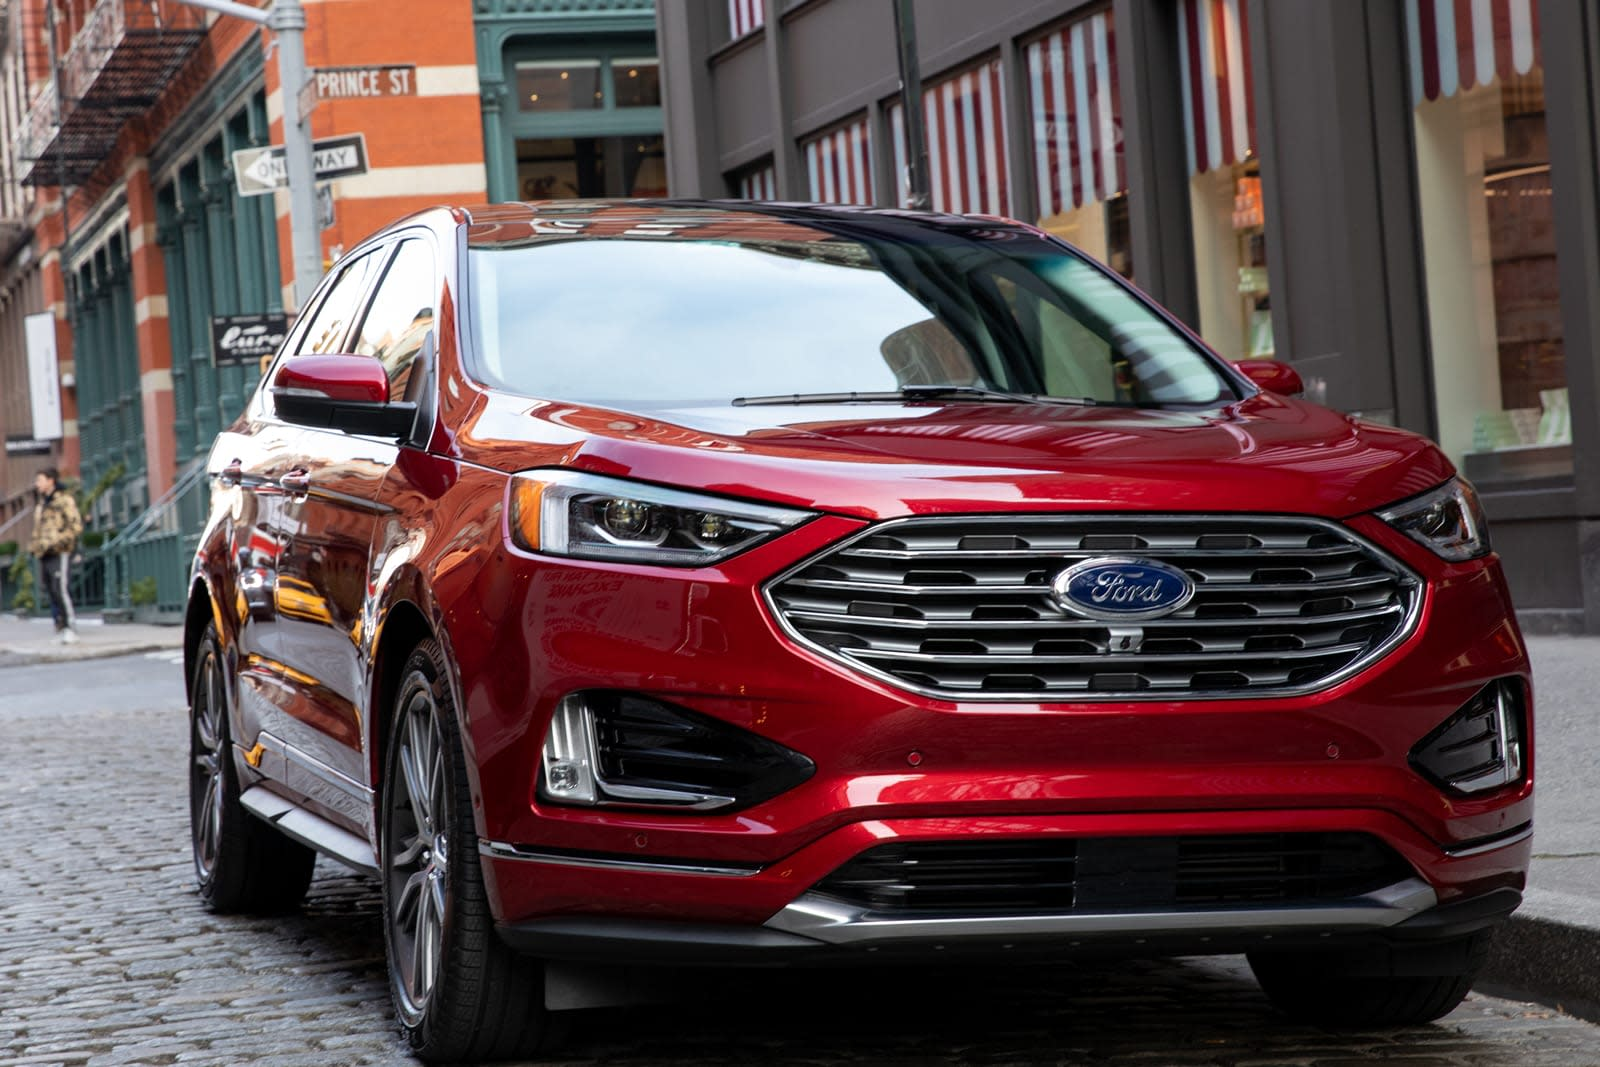 Ford will reportedly make two more electric SUVs by 2023